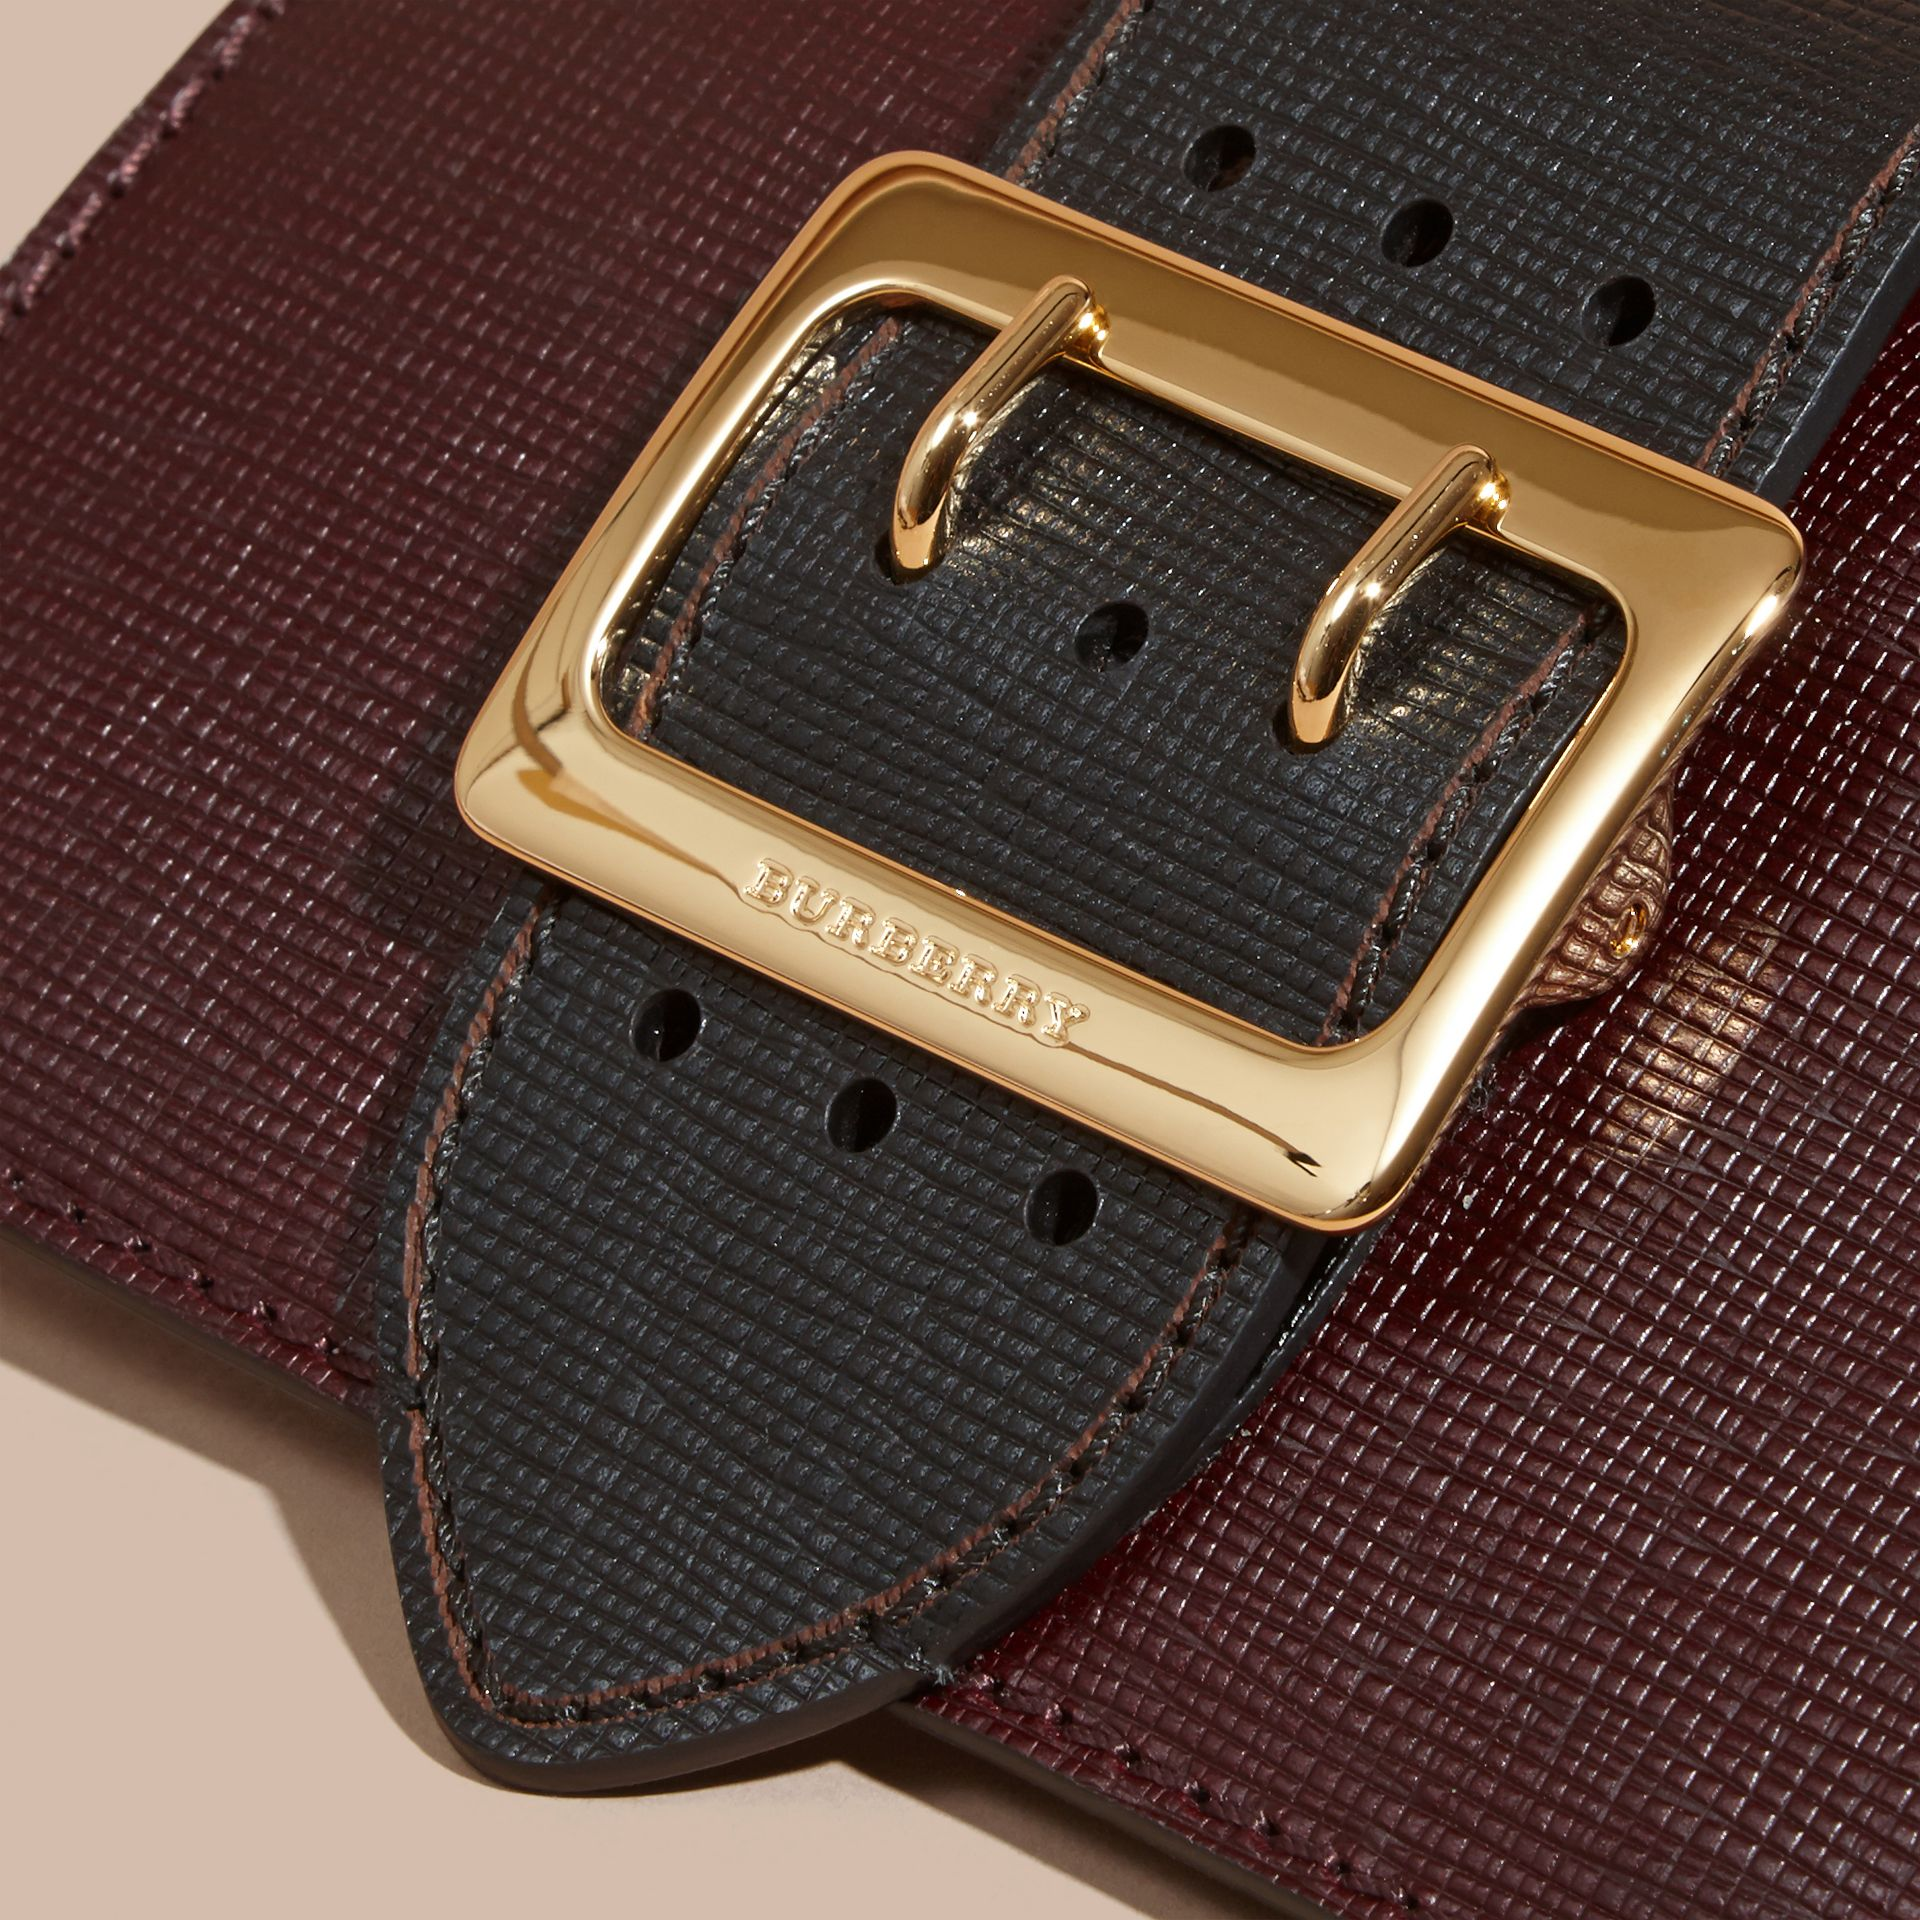 Burgundy/black The Small Buckle Bag in Textured Leather Burgundy/black - gallery image 2